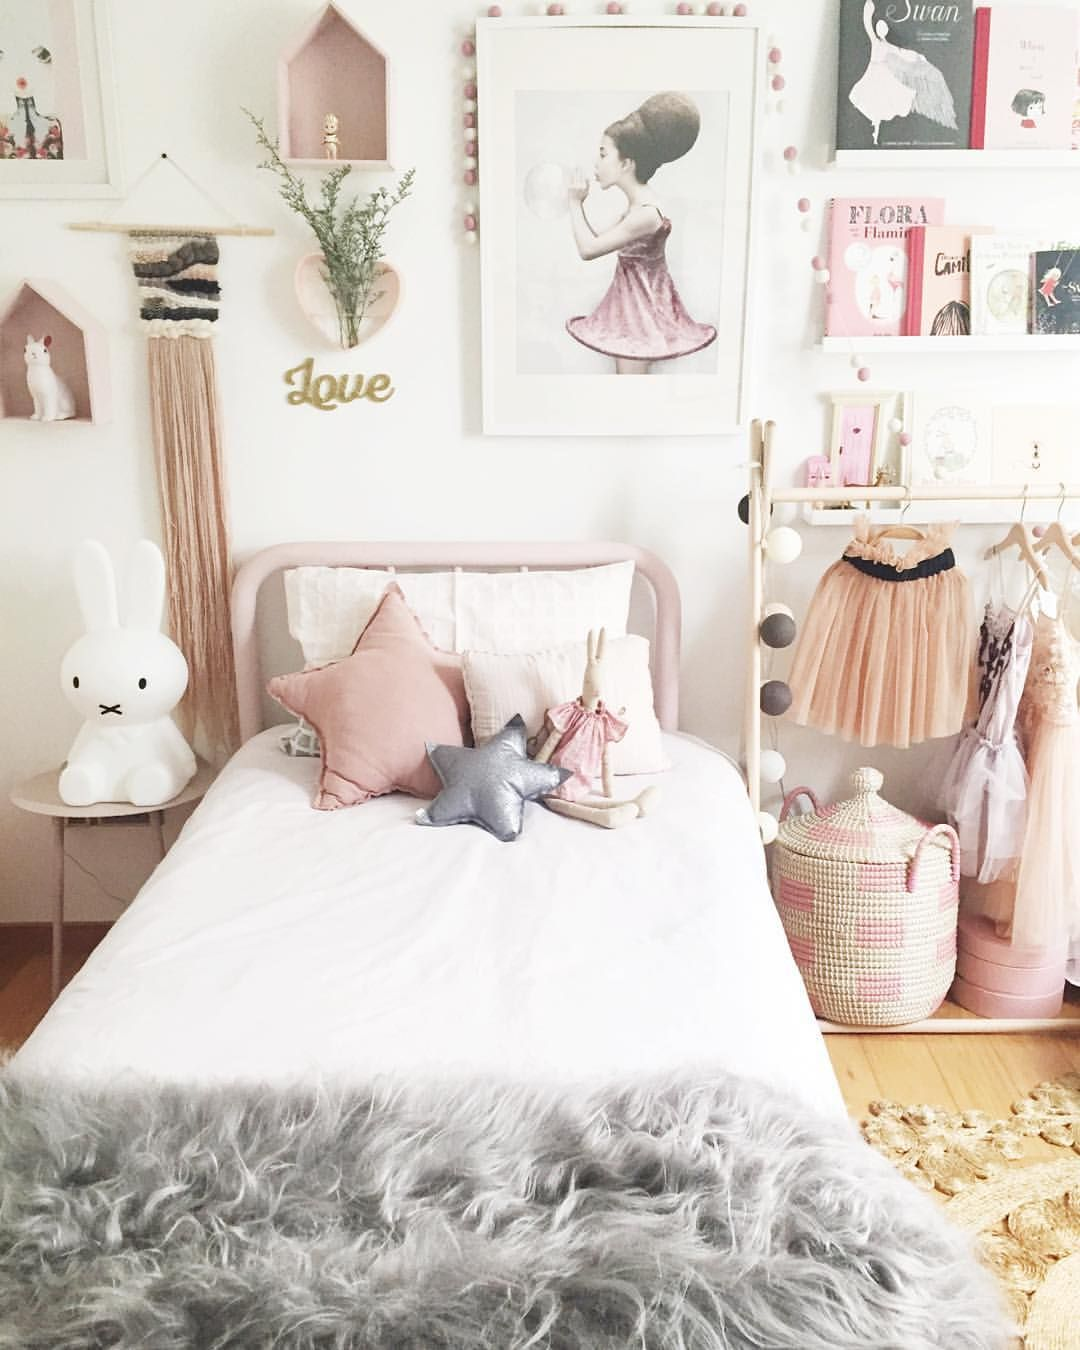 pin von kati hoffmann auf baby pinterest. Black Bedroom Furniture Sets. Home Design Ideas